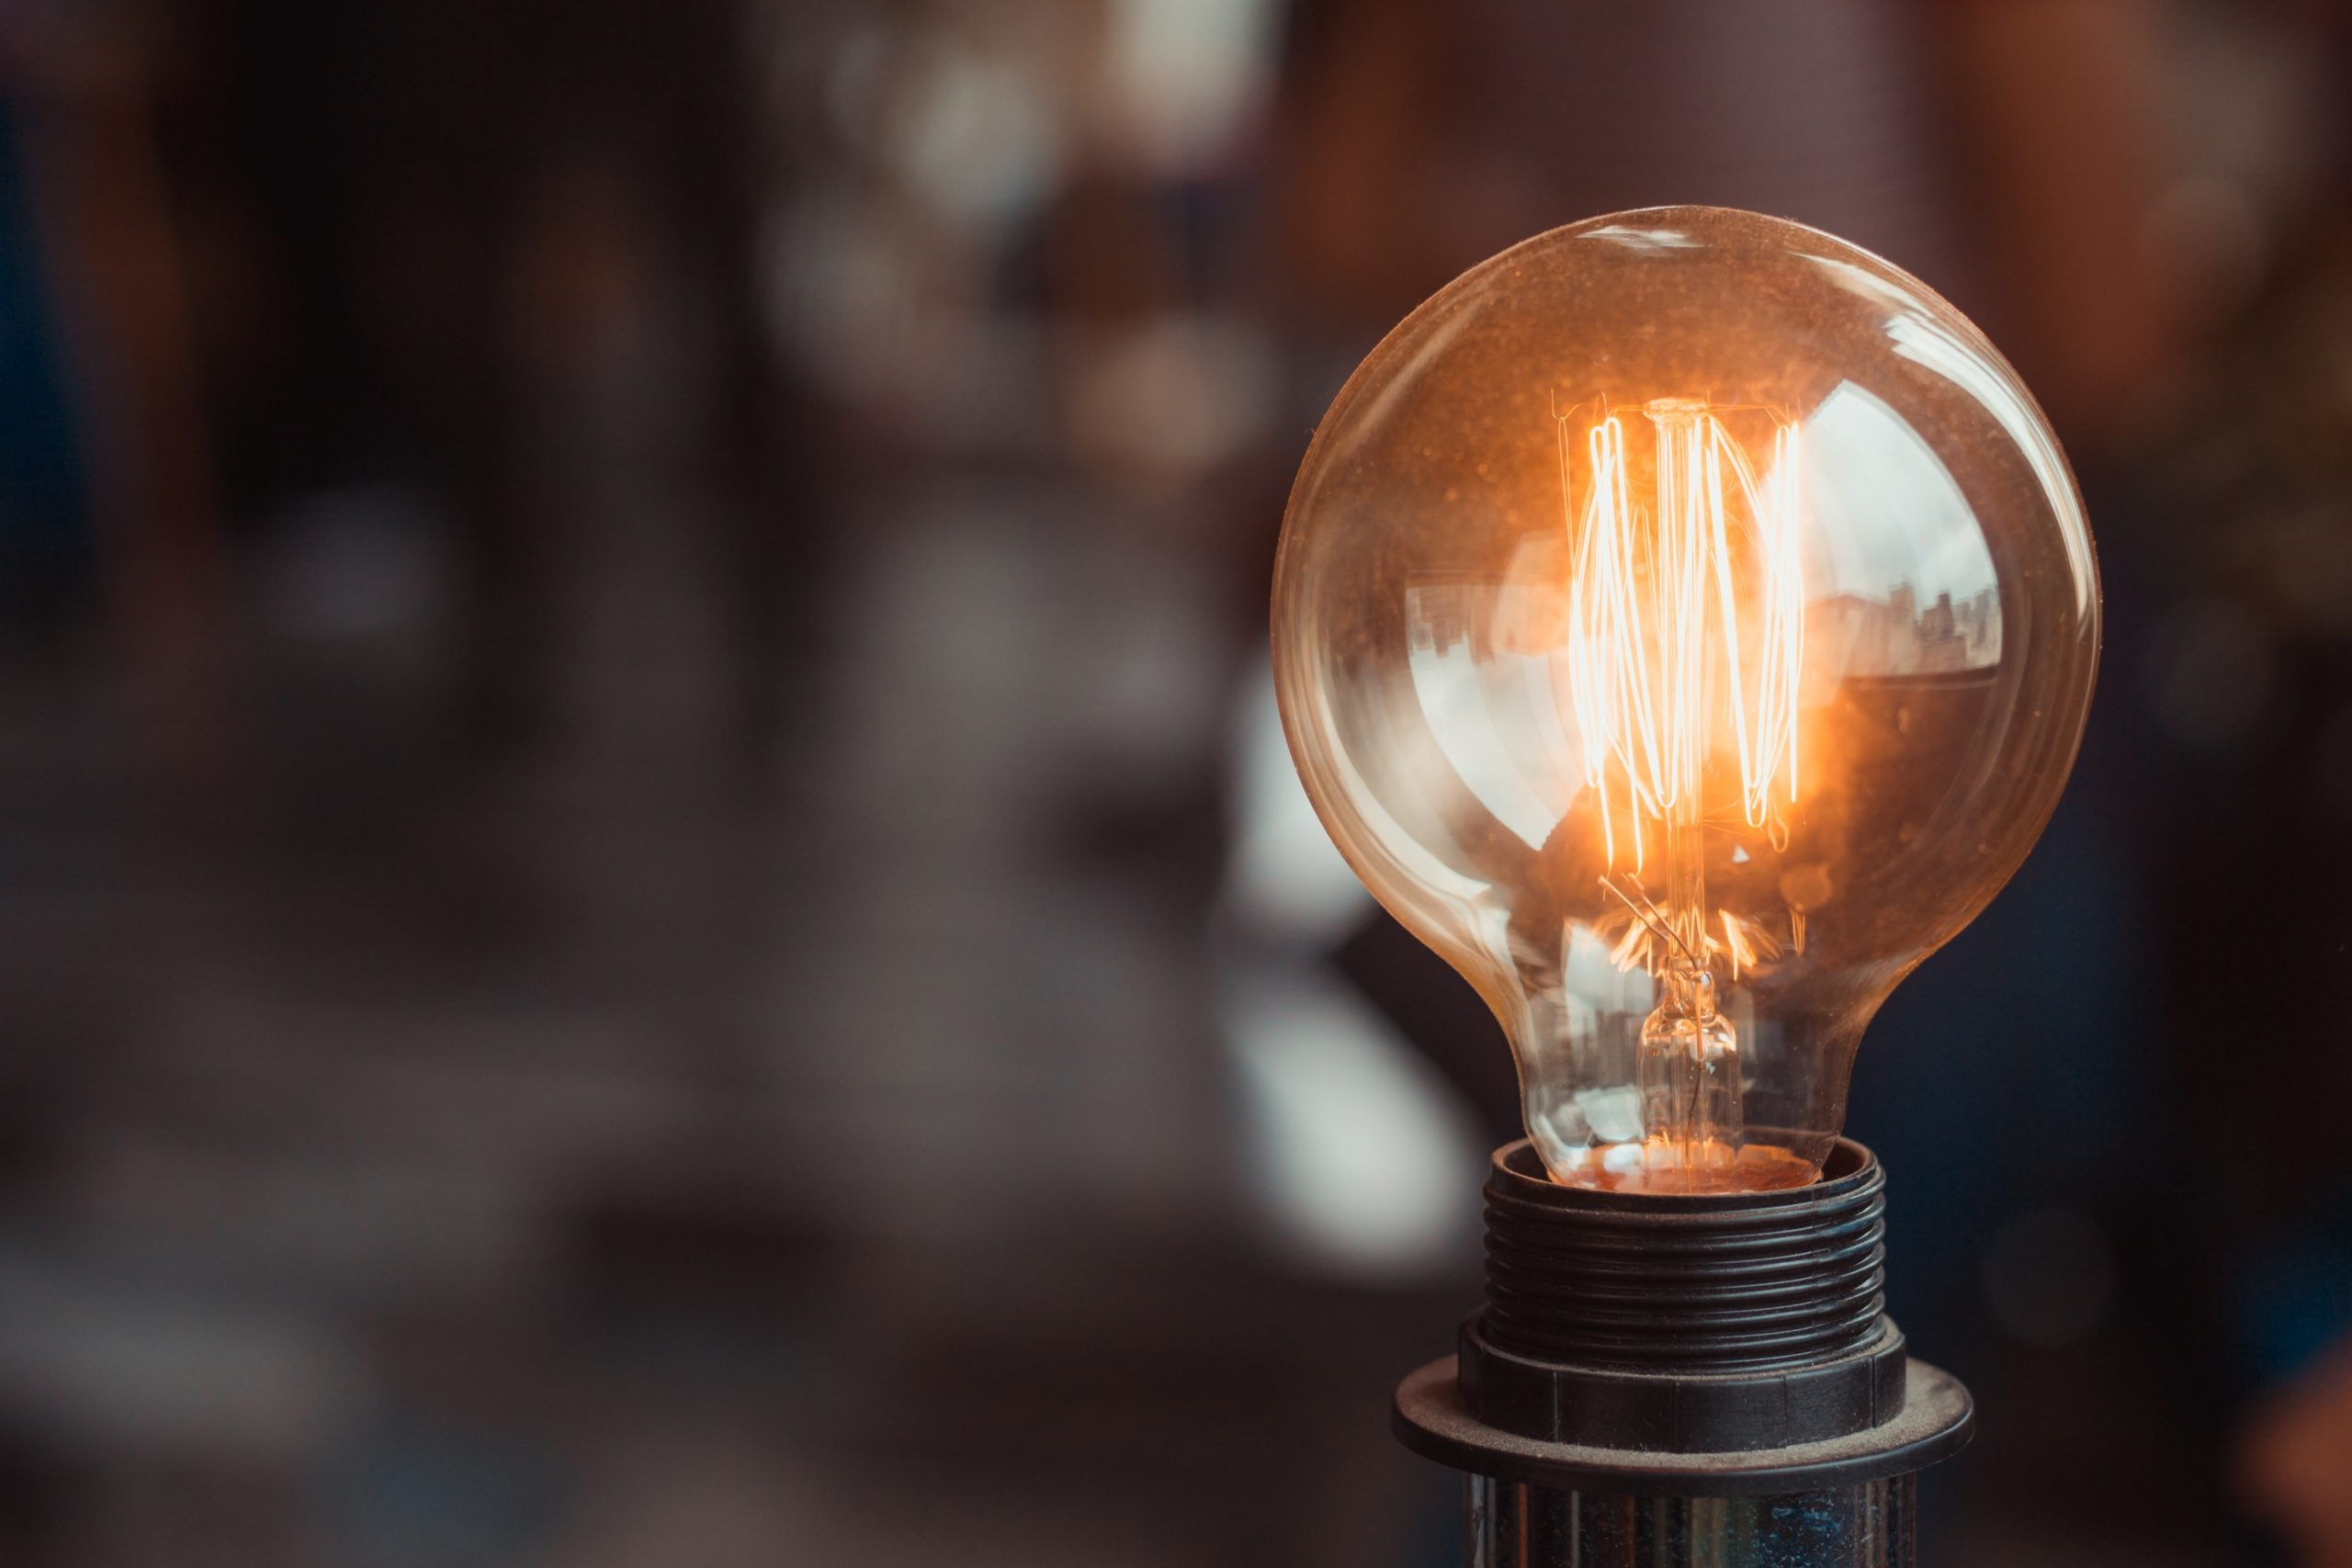 Electricity selective focus photography of turned on light bulb 2177473 scaled